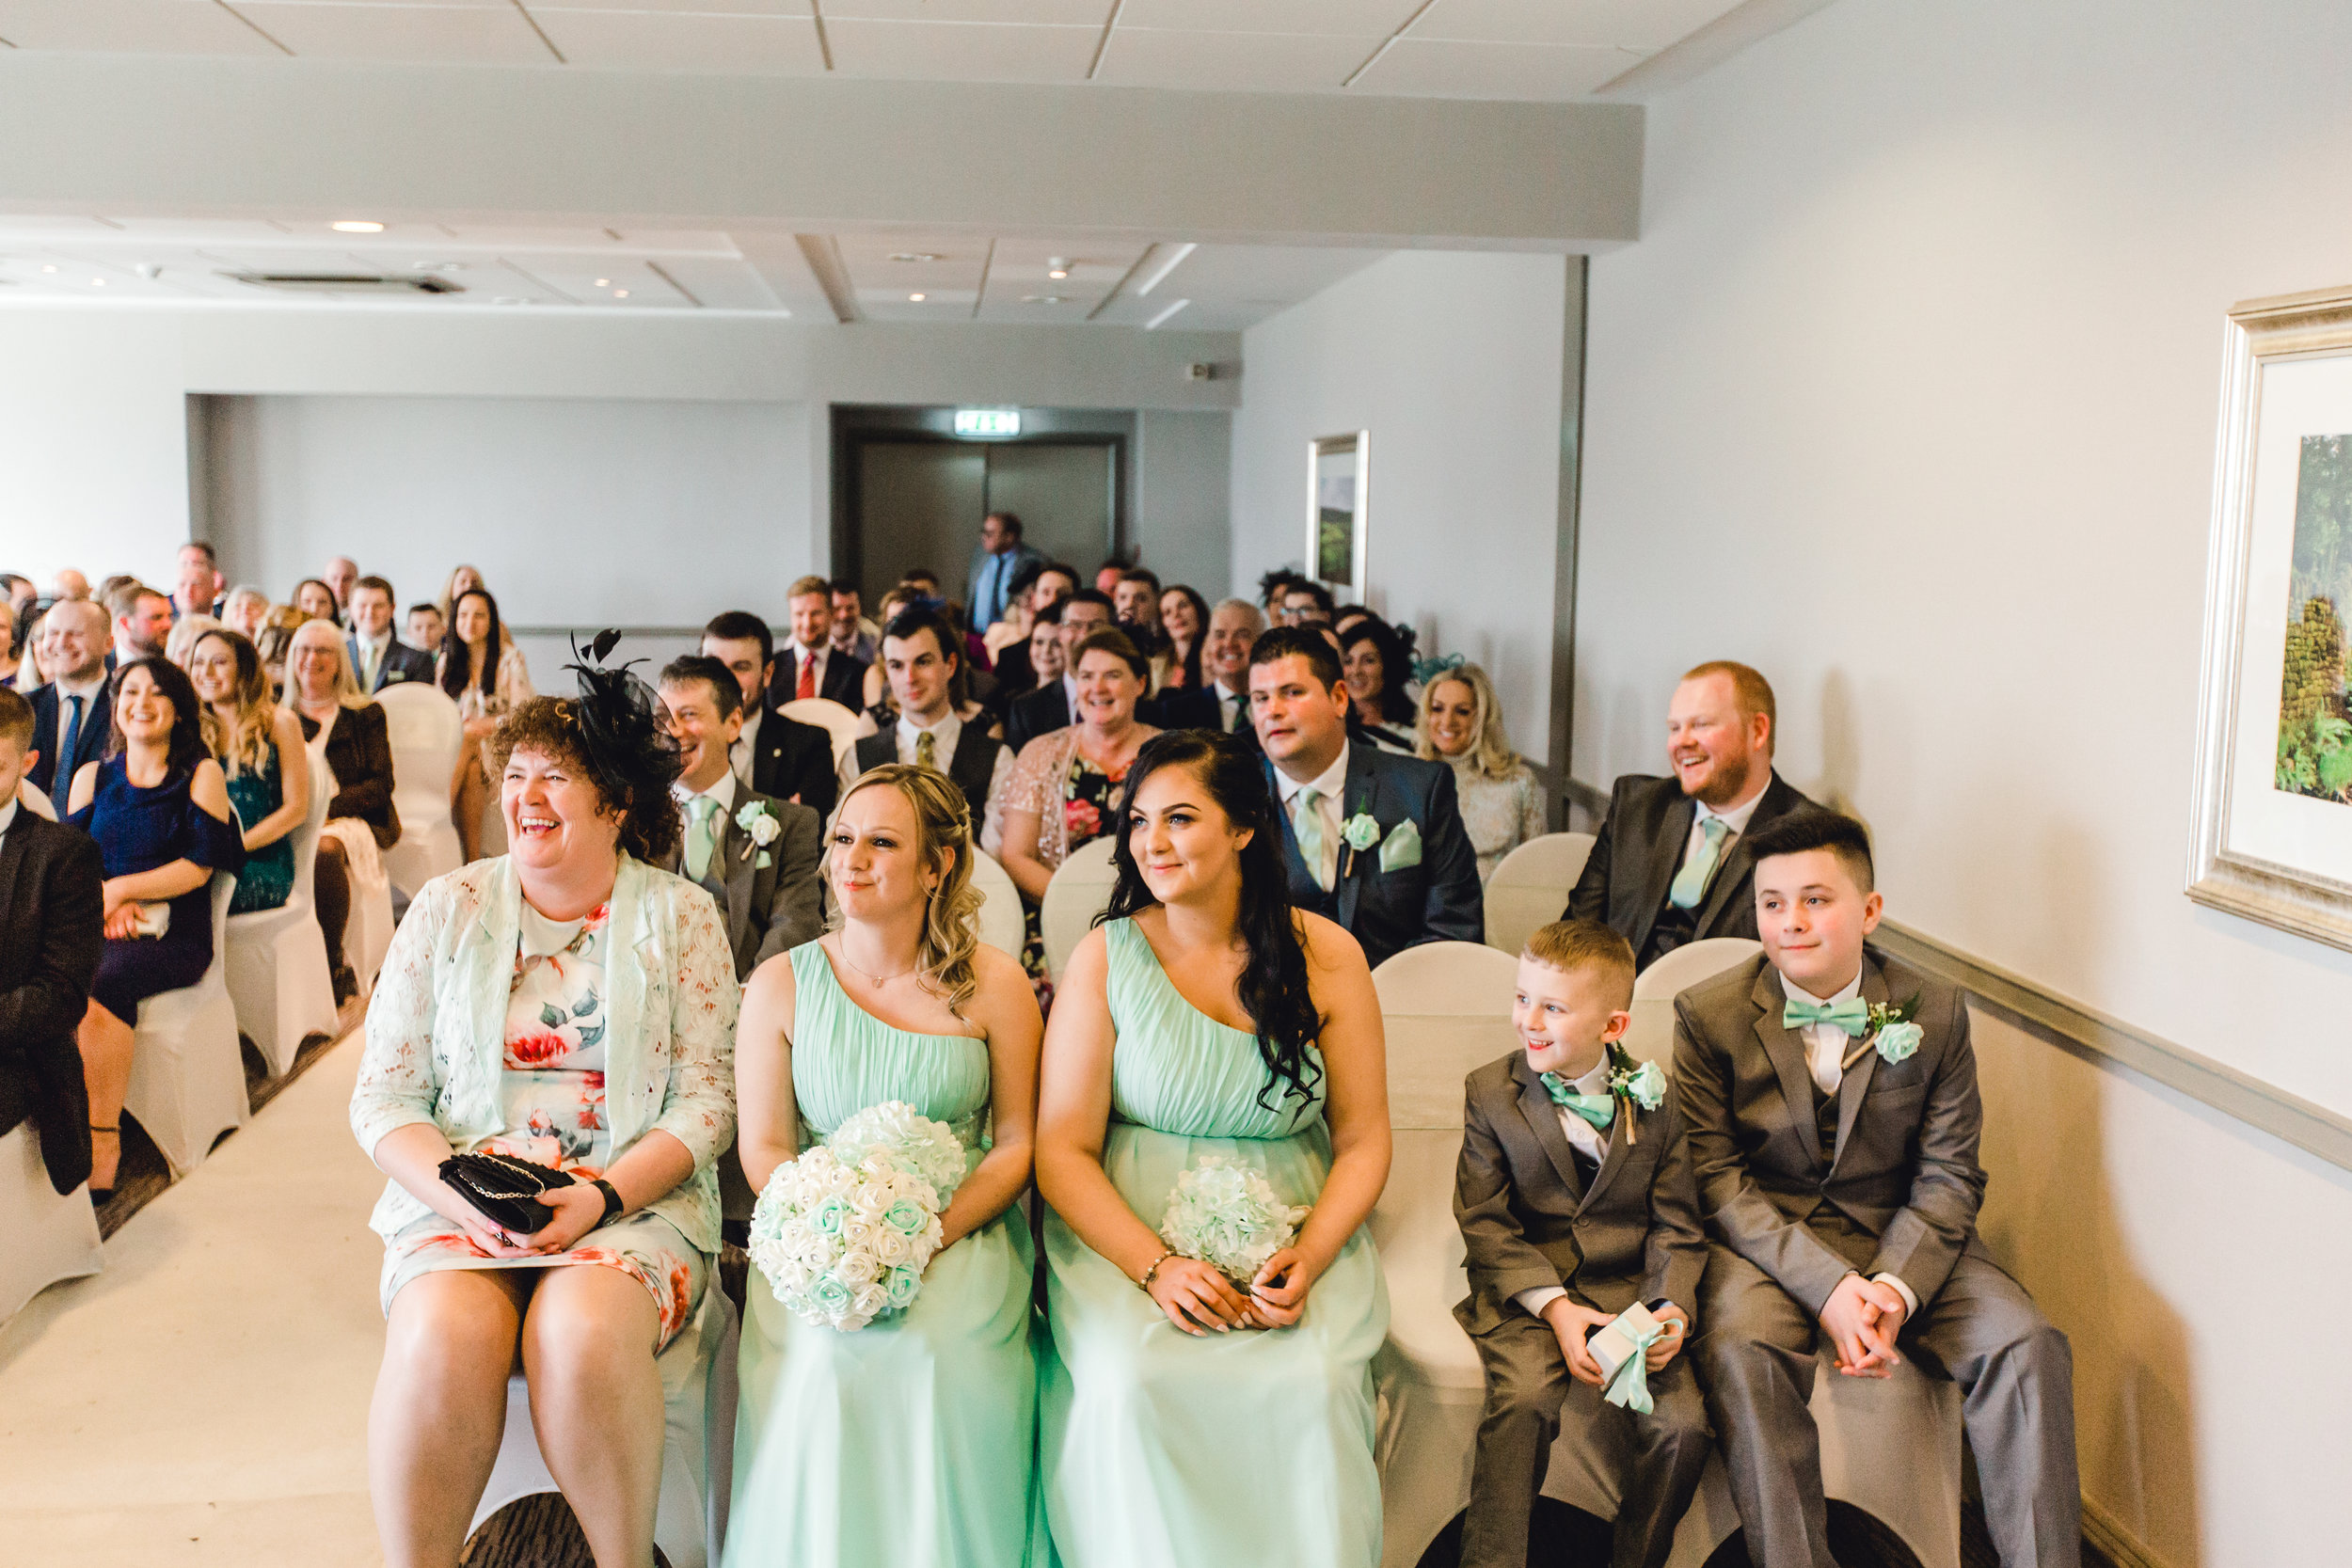 Wedding guests reactions at a wedding ceremony